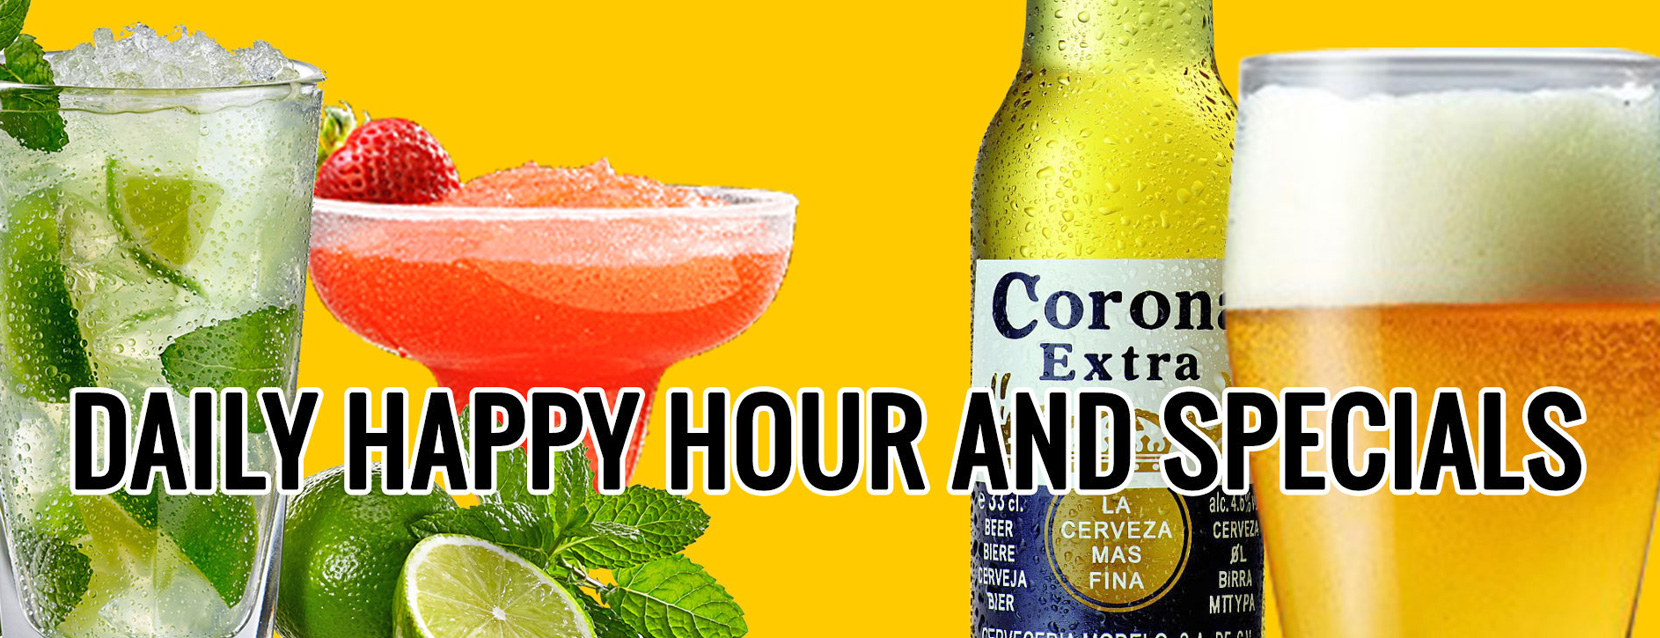 Daily Happy Hour and Specials